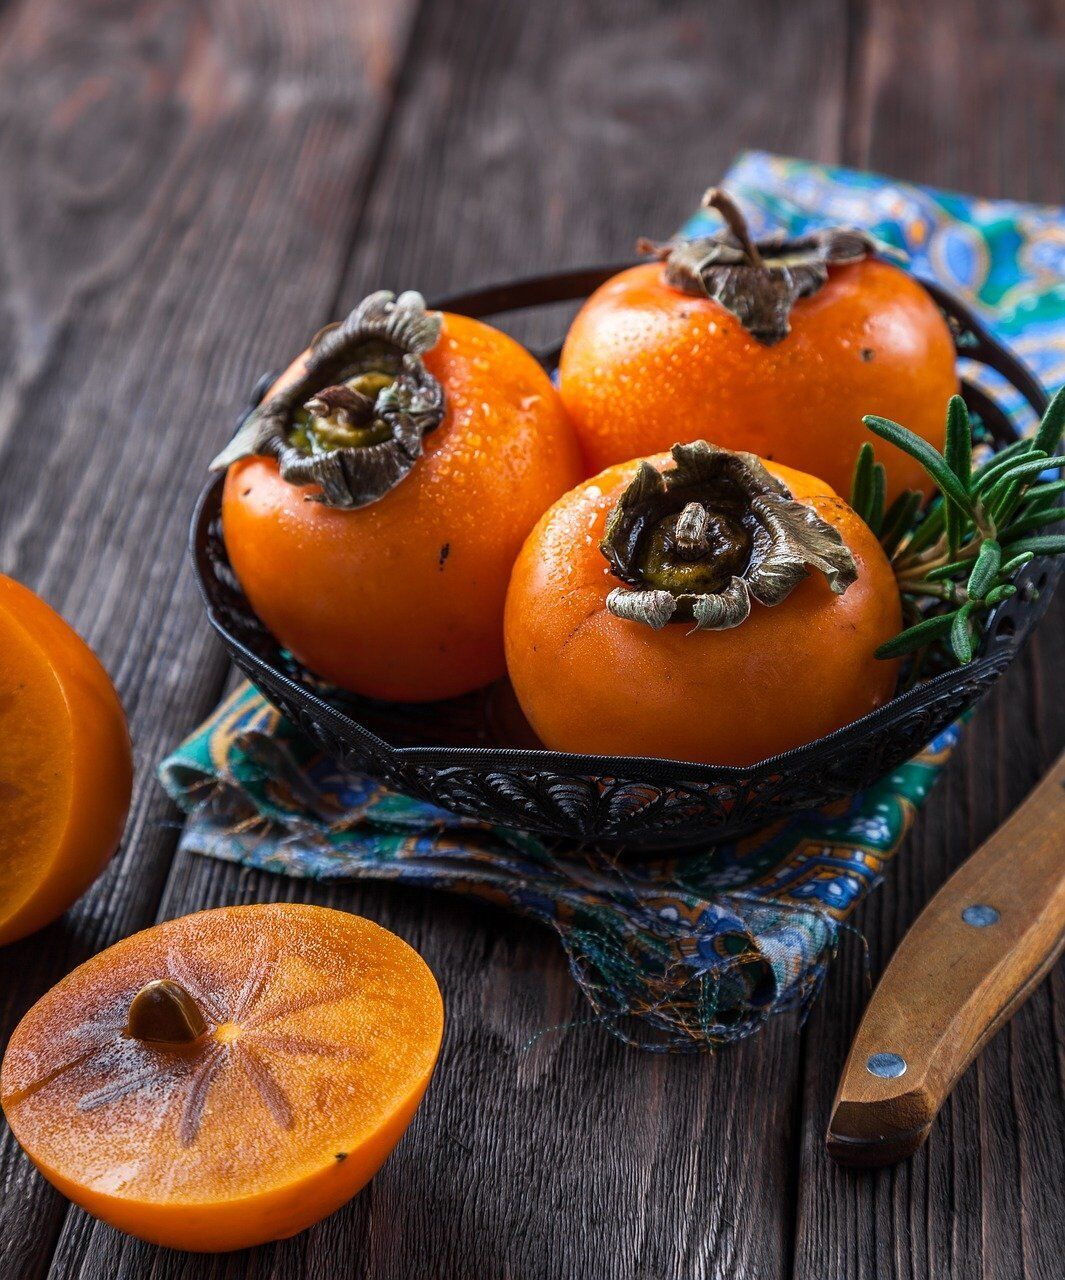 Soaps containing persimmon are useful in dealing with body odor